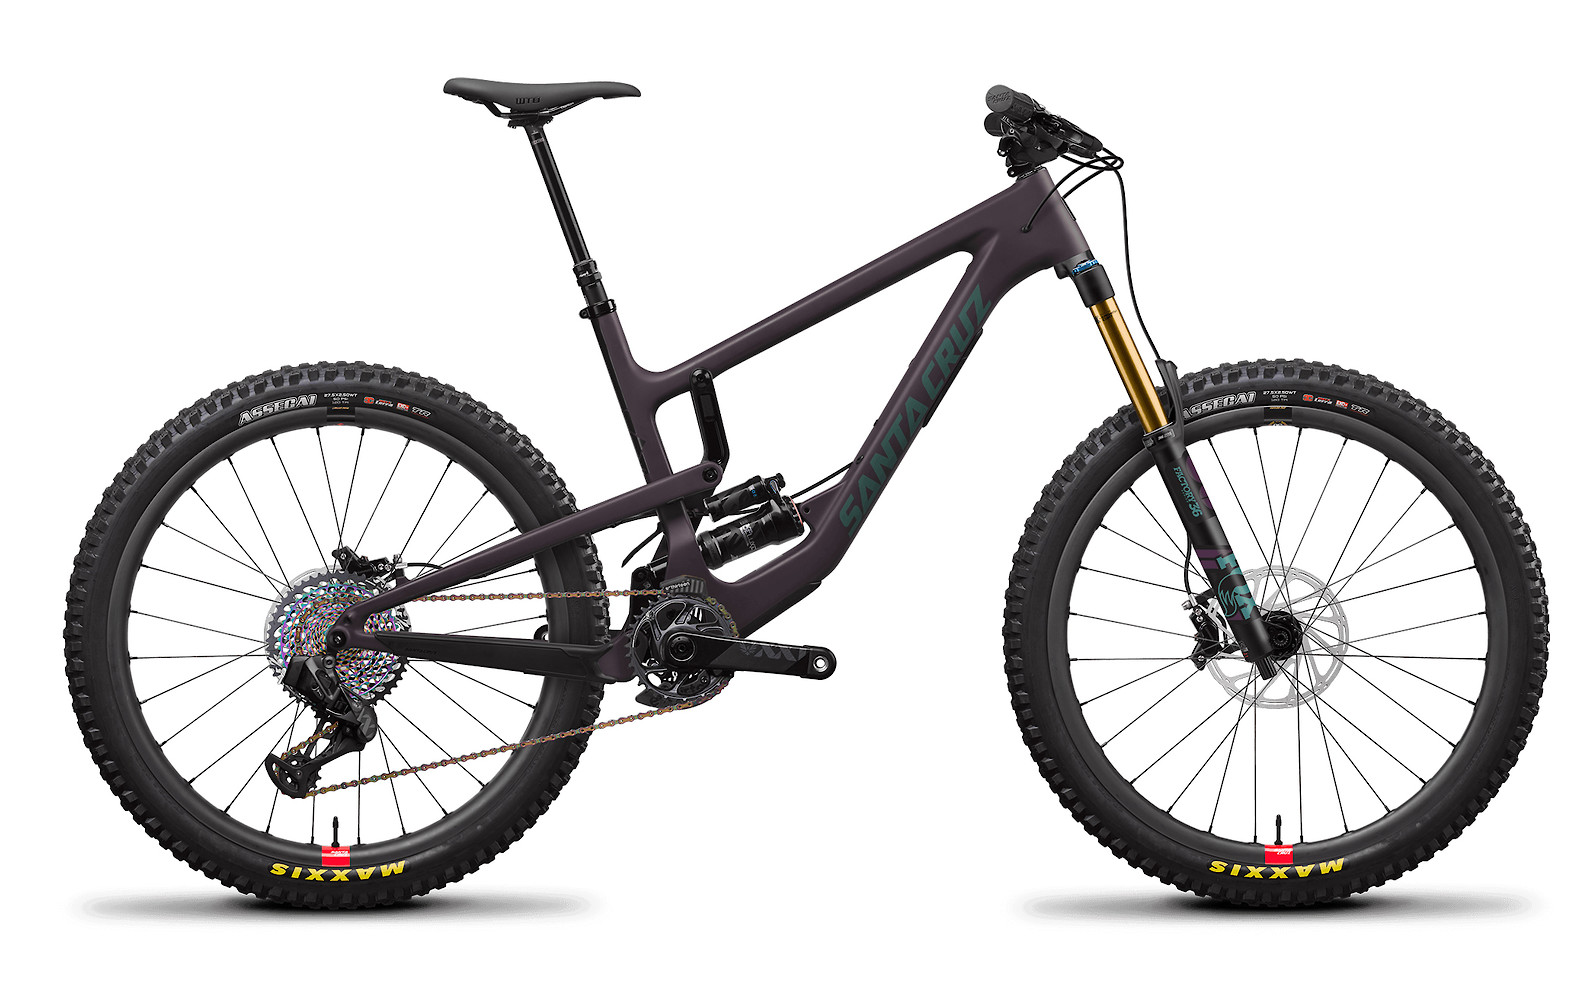 2020 Santa Cruz Nomad Carbon CC XX1 AXS Reserve (Eggplant and Aquarius Green)